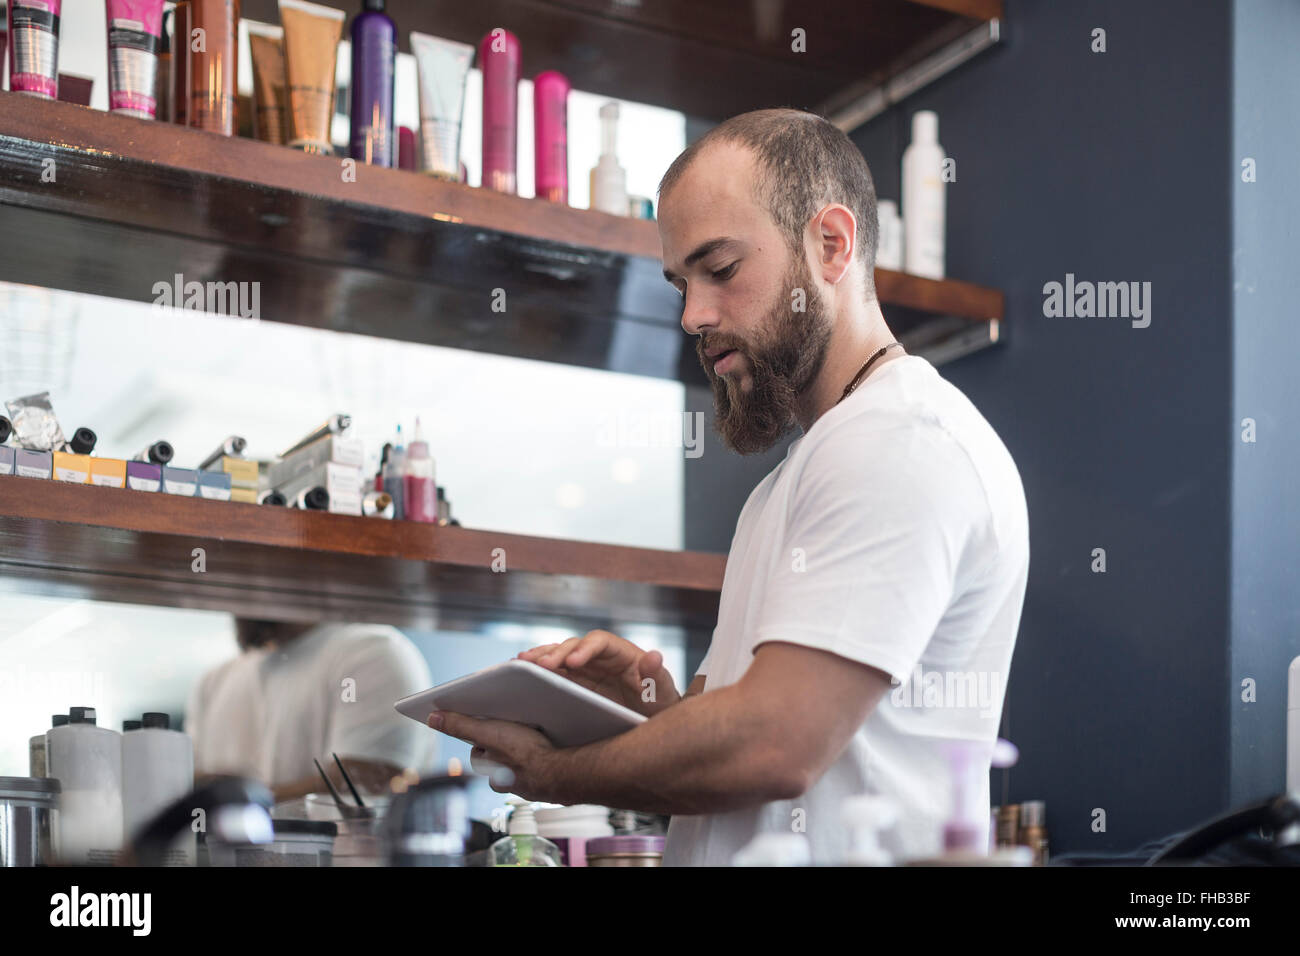 Salon de coiffure faisant l'inventaire shop with digital tablet Photo Stock